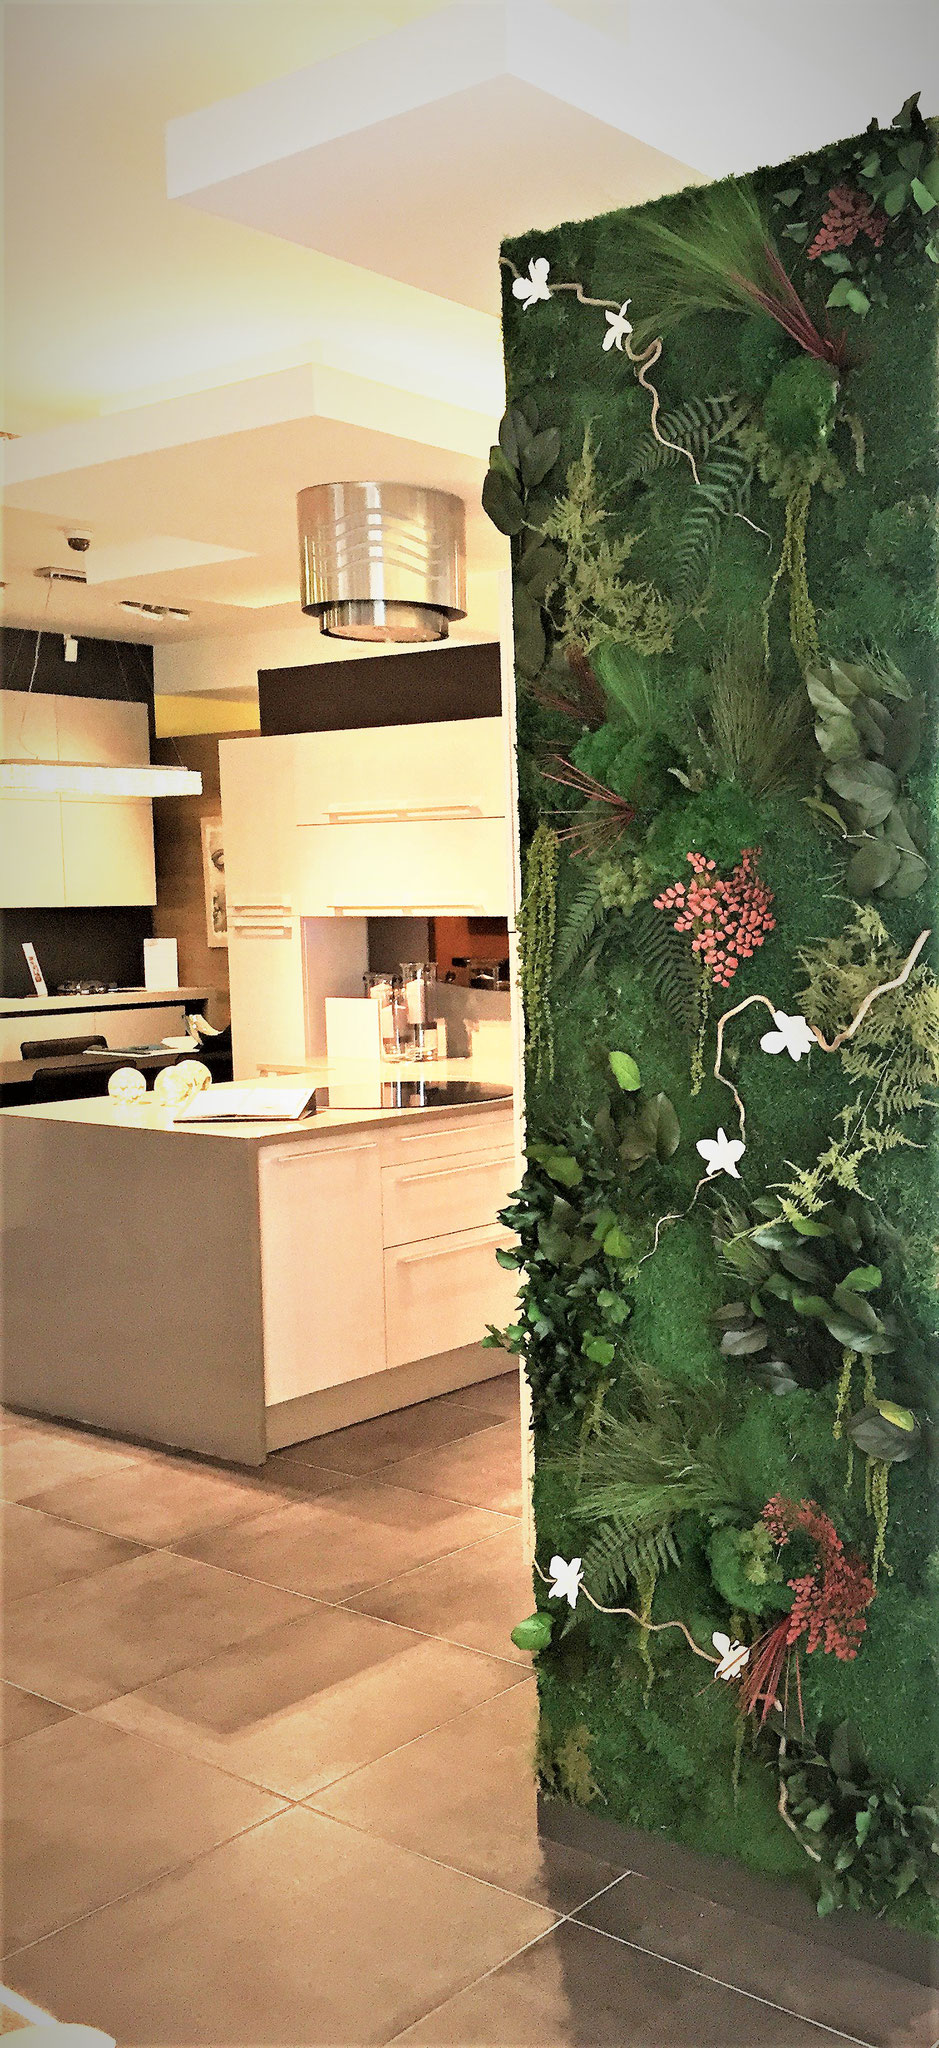 Magasin cuisine de france centre commercial l 39 atoll angers vegetal indoor mur v g tal - Atoll angers magasin ...